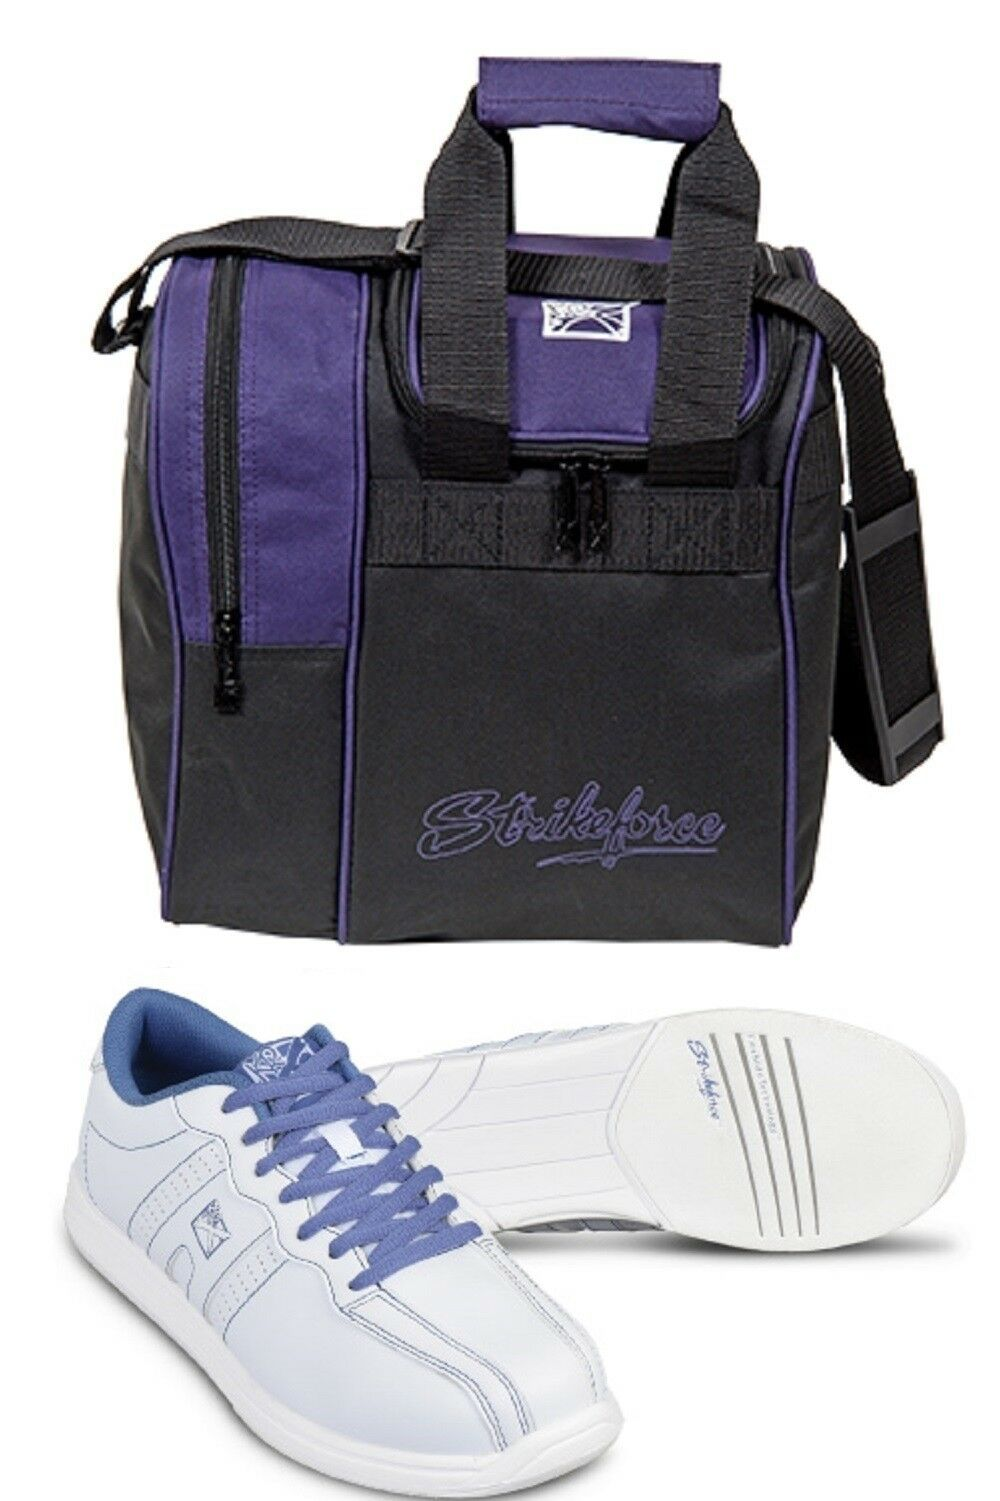 Women's KR Bowling shoes color White bluee Sizes 5-11 & Purple 1 Ball Bag